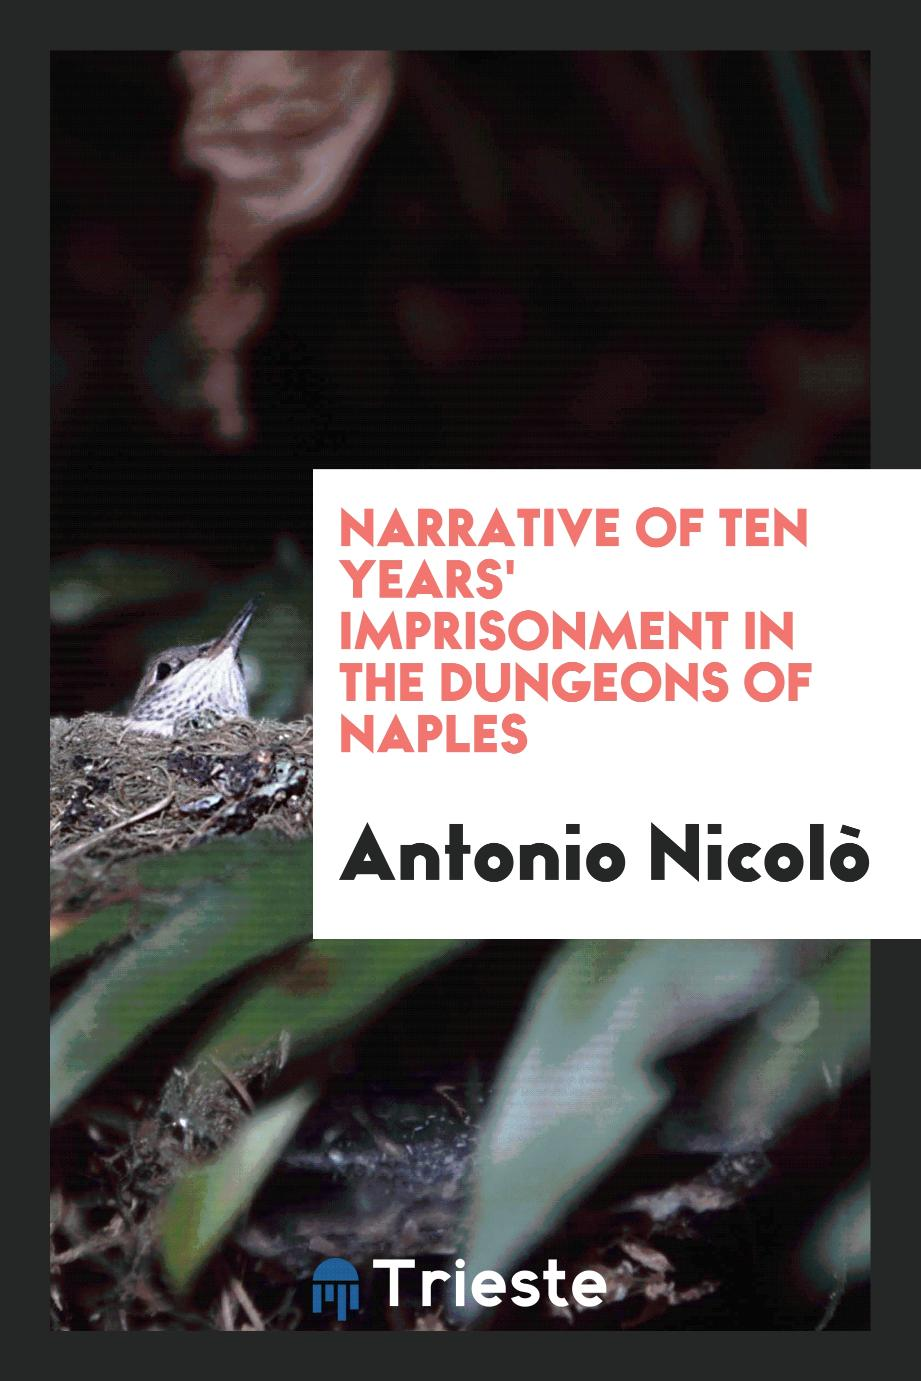 Narrative of Ten Years' Imprisonment in the Dungeons of Naples